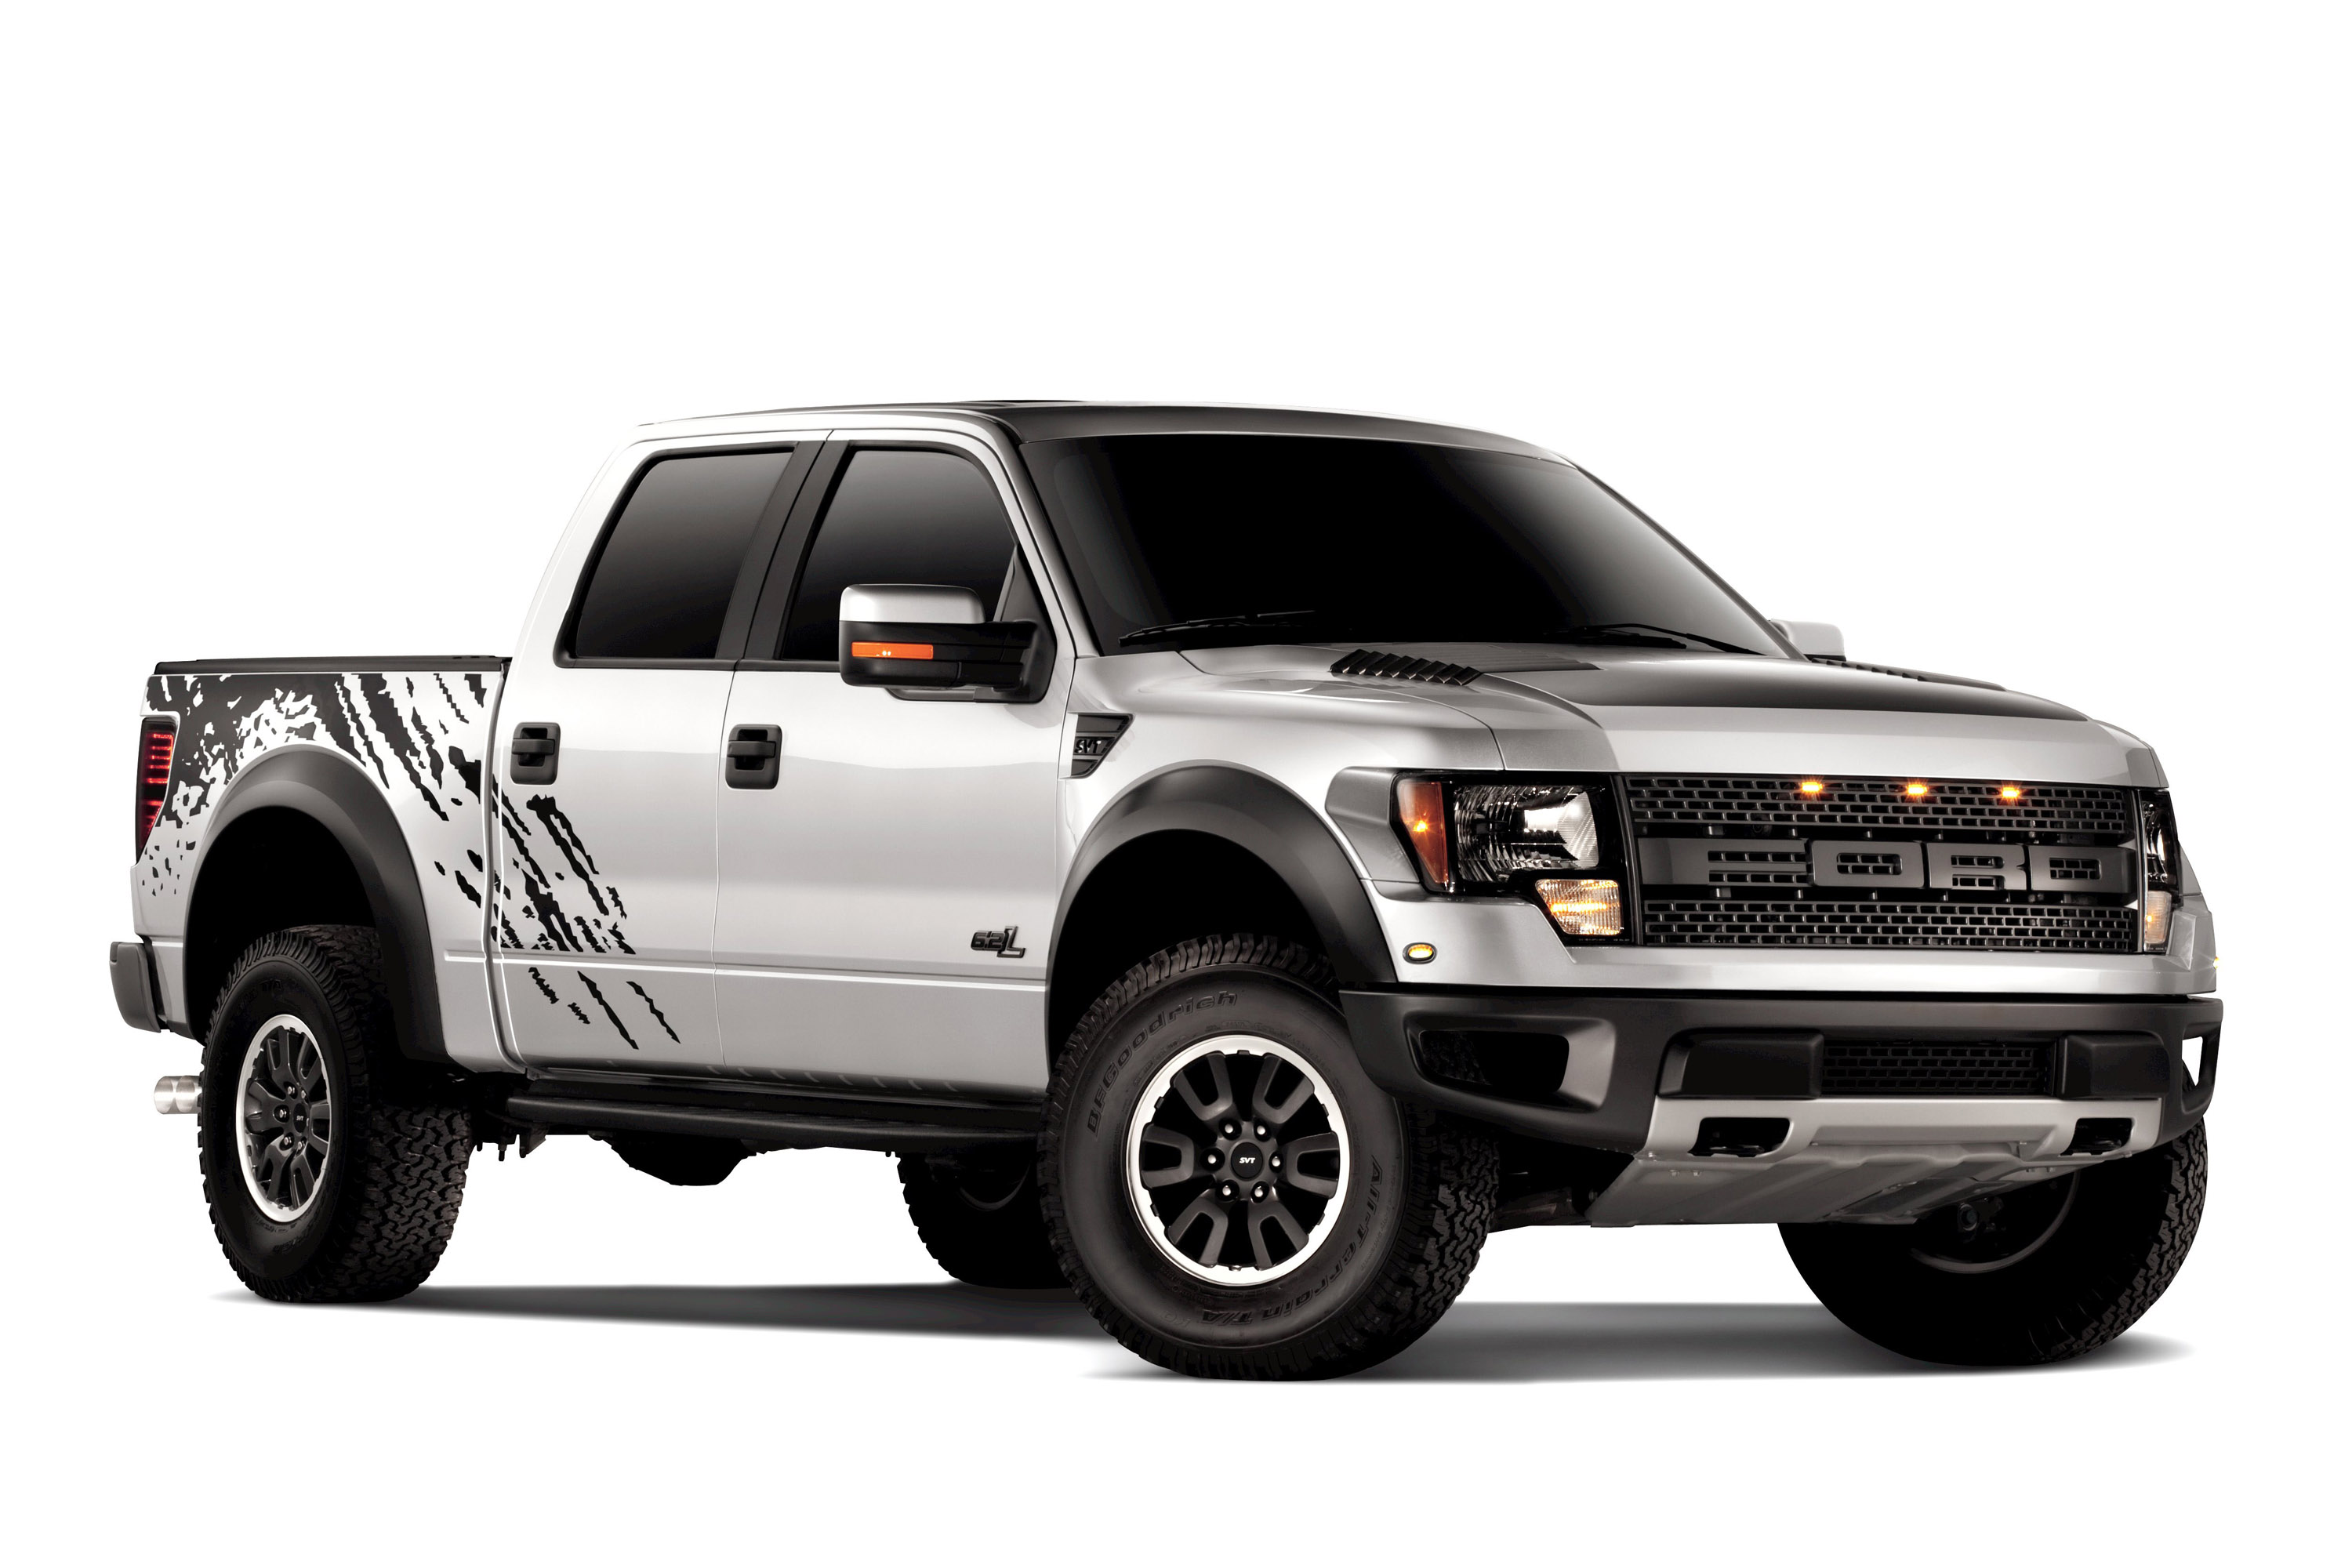 Ford F-150 SVT Raptor SuperCrew photo #1